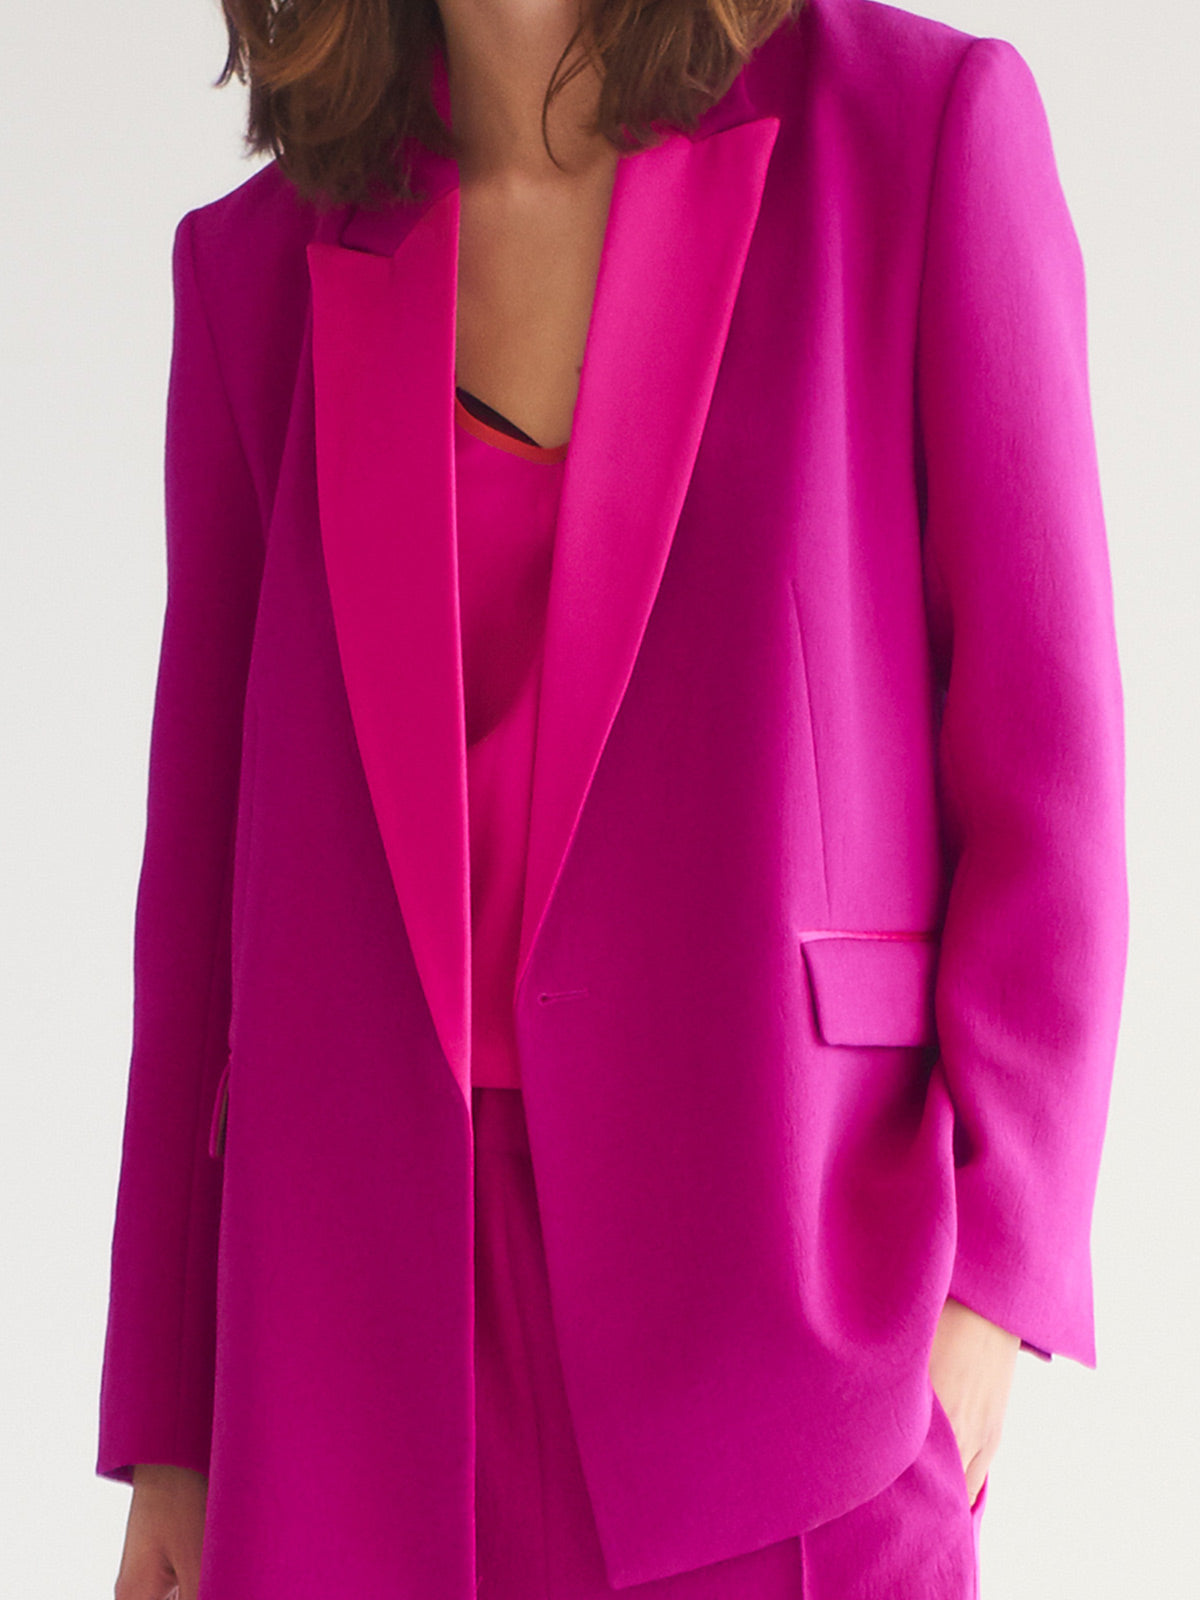 e88008140431 Sykes London | Shop Women's Clothing From Sykes – Page 2